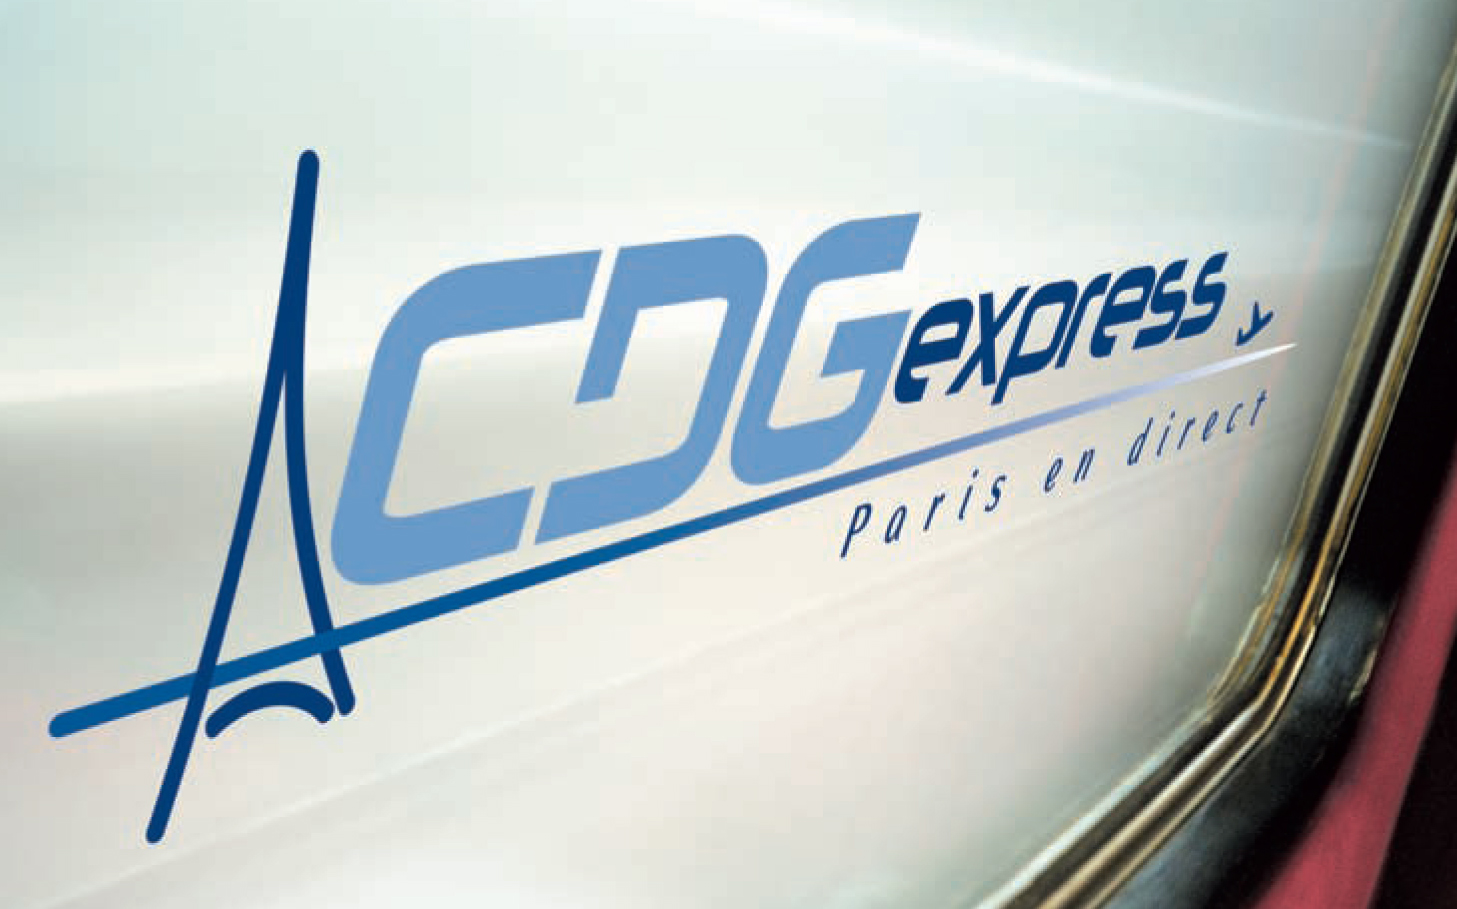 Aéroports de Paris welcomes the revival of CDG Express